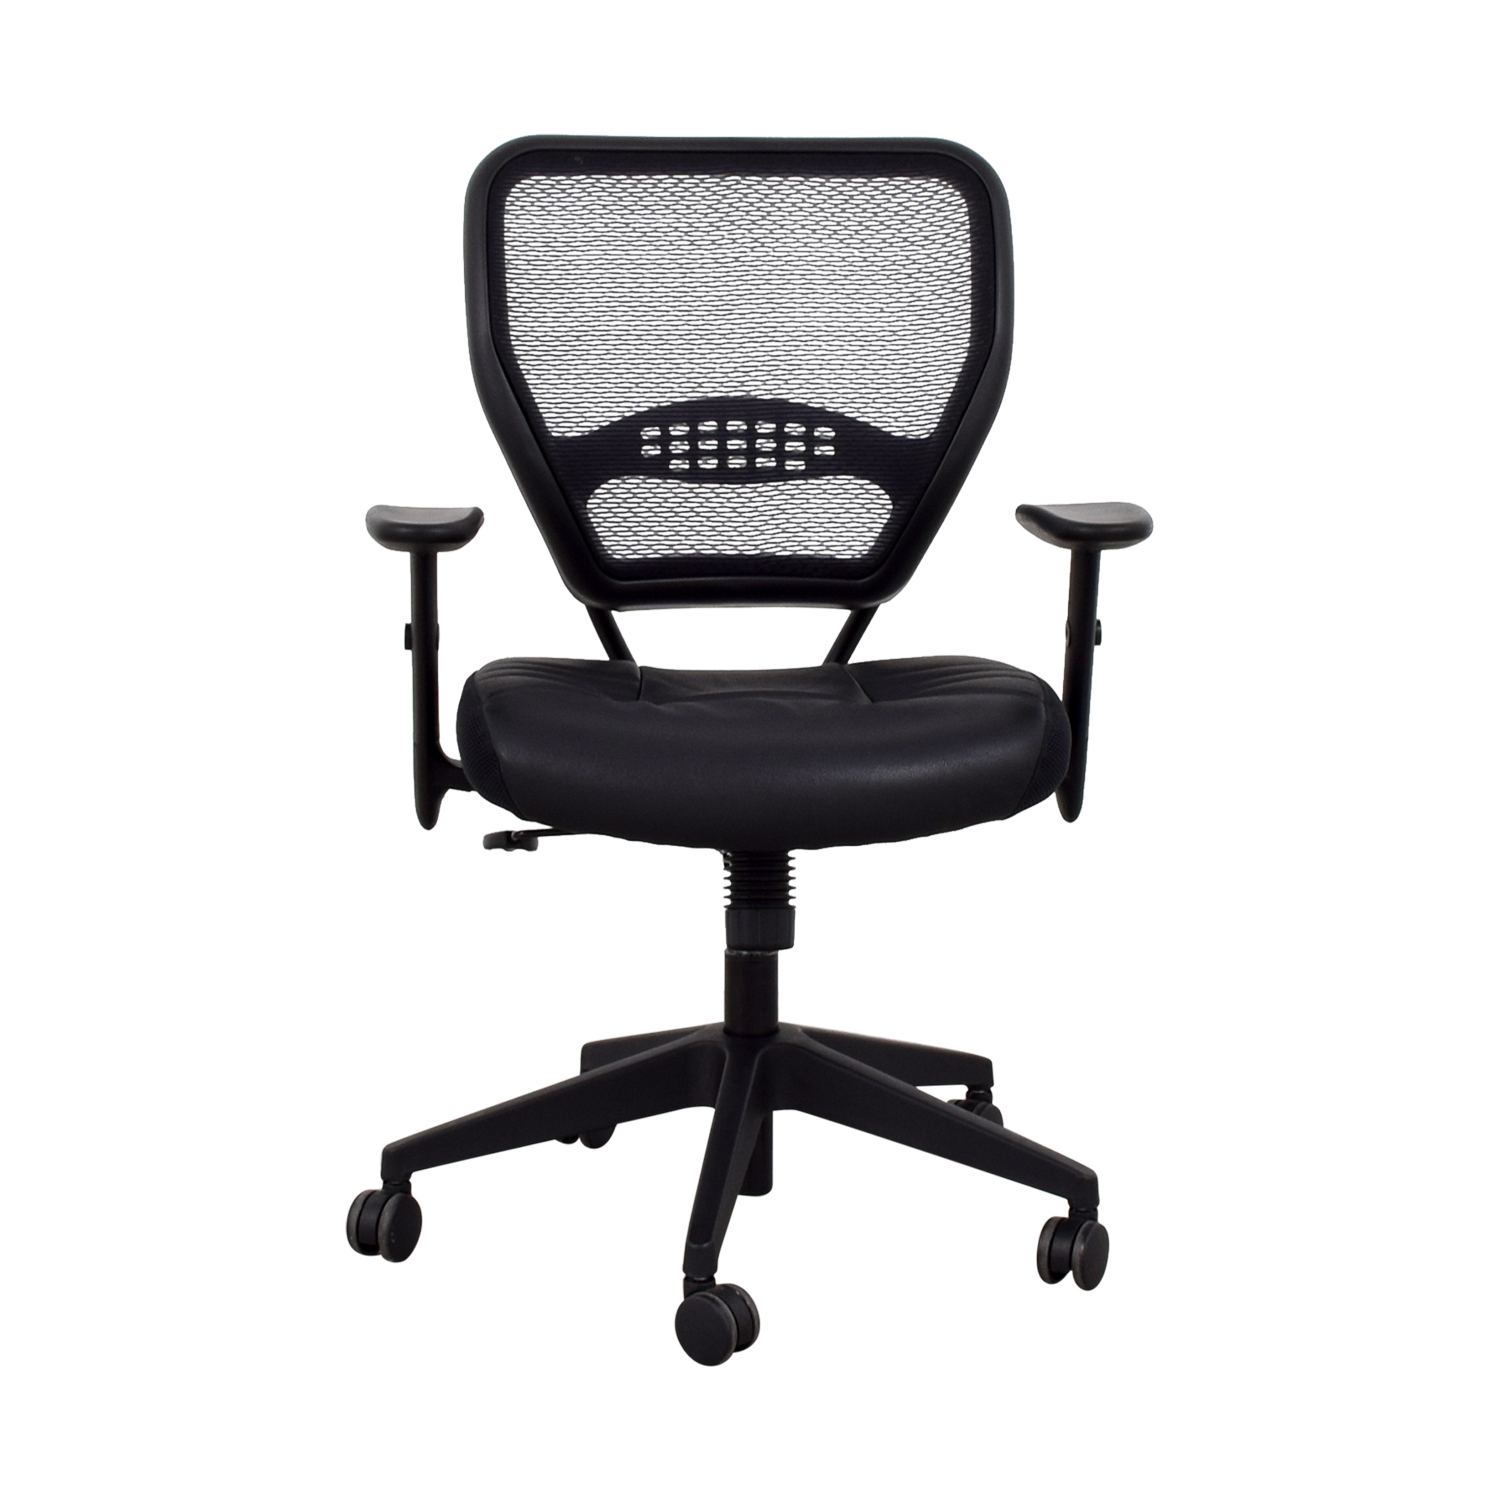 Office Star Office Star Black Eco Leather Seat and Air Grid Back Chair Home Office Chairs